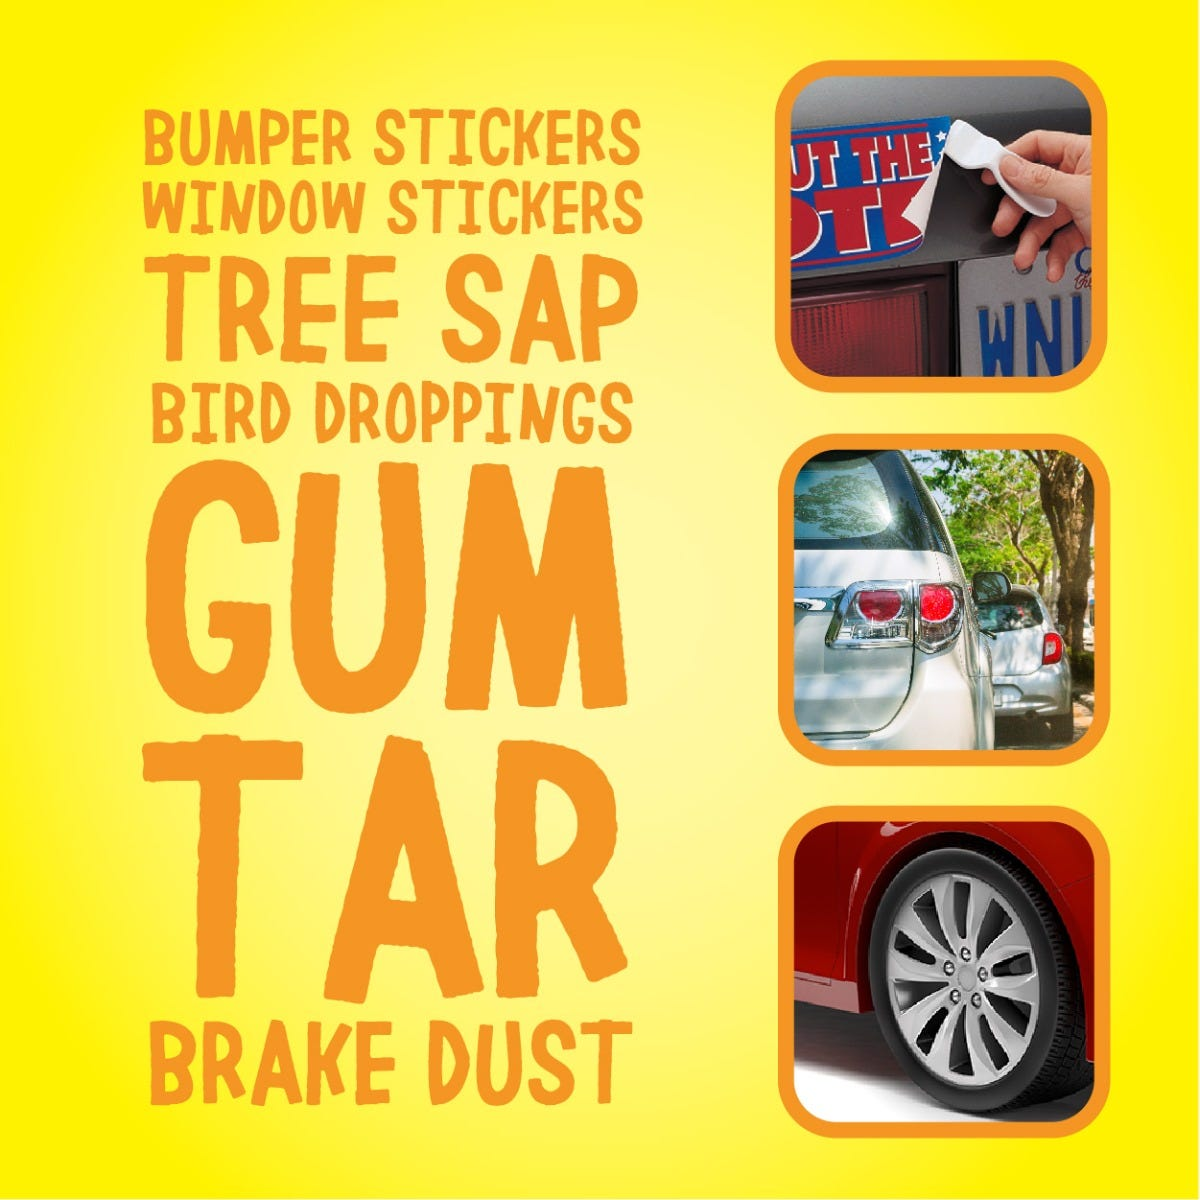 Use on stickers, tree sap and bird droppings